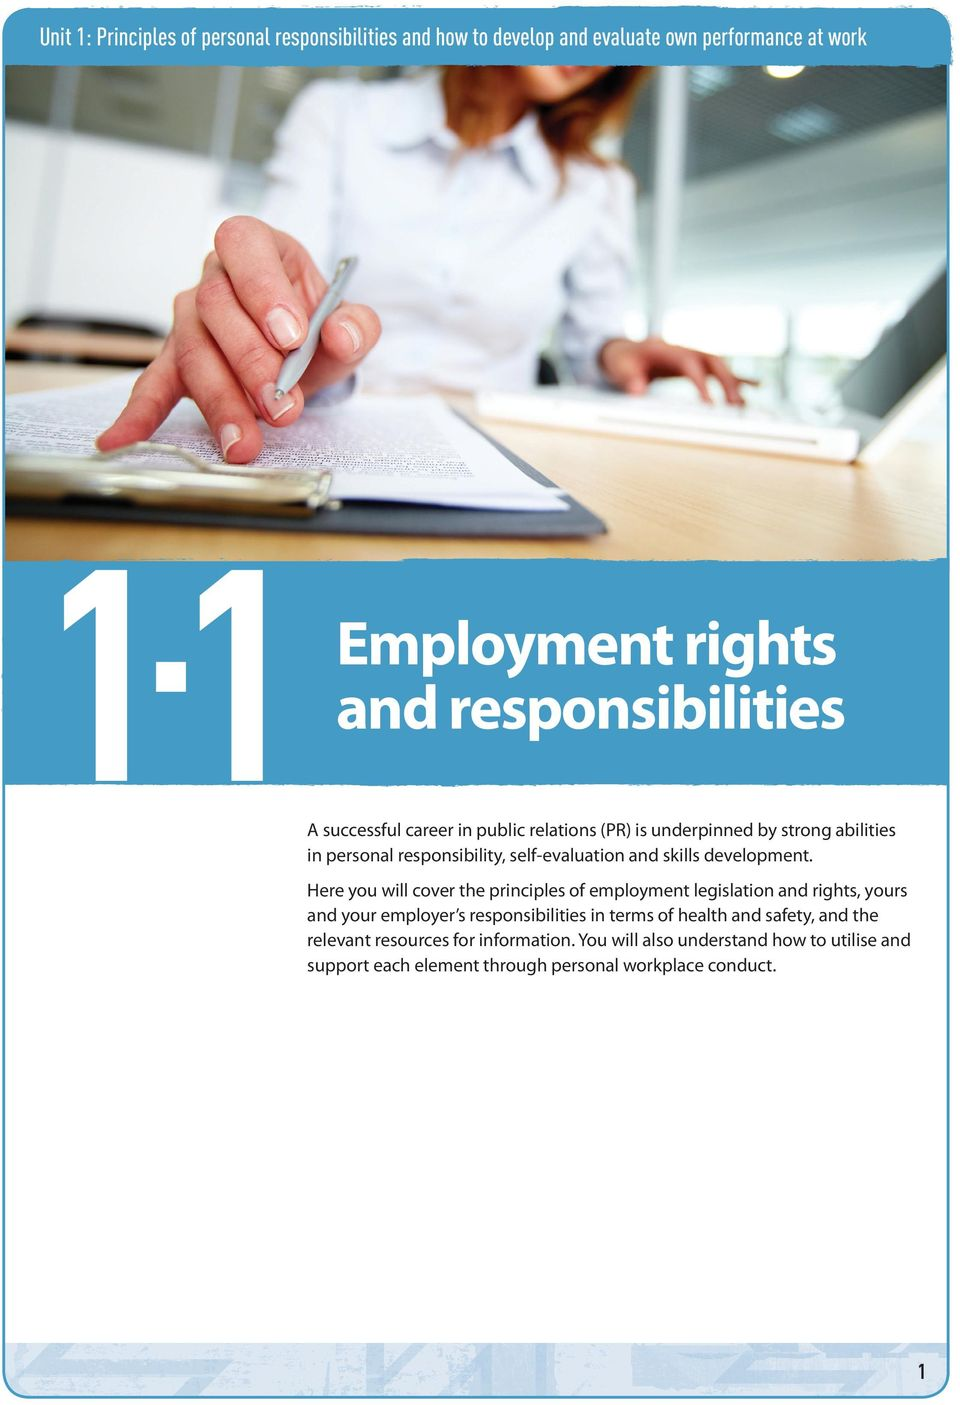 Here you will cover the principles of employment legislation and rights, yours and your employer s responsibilities in